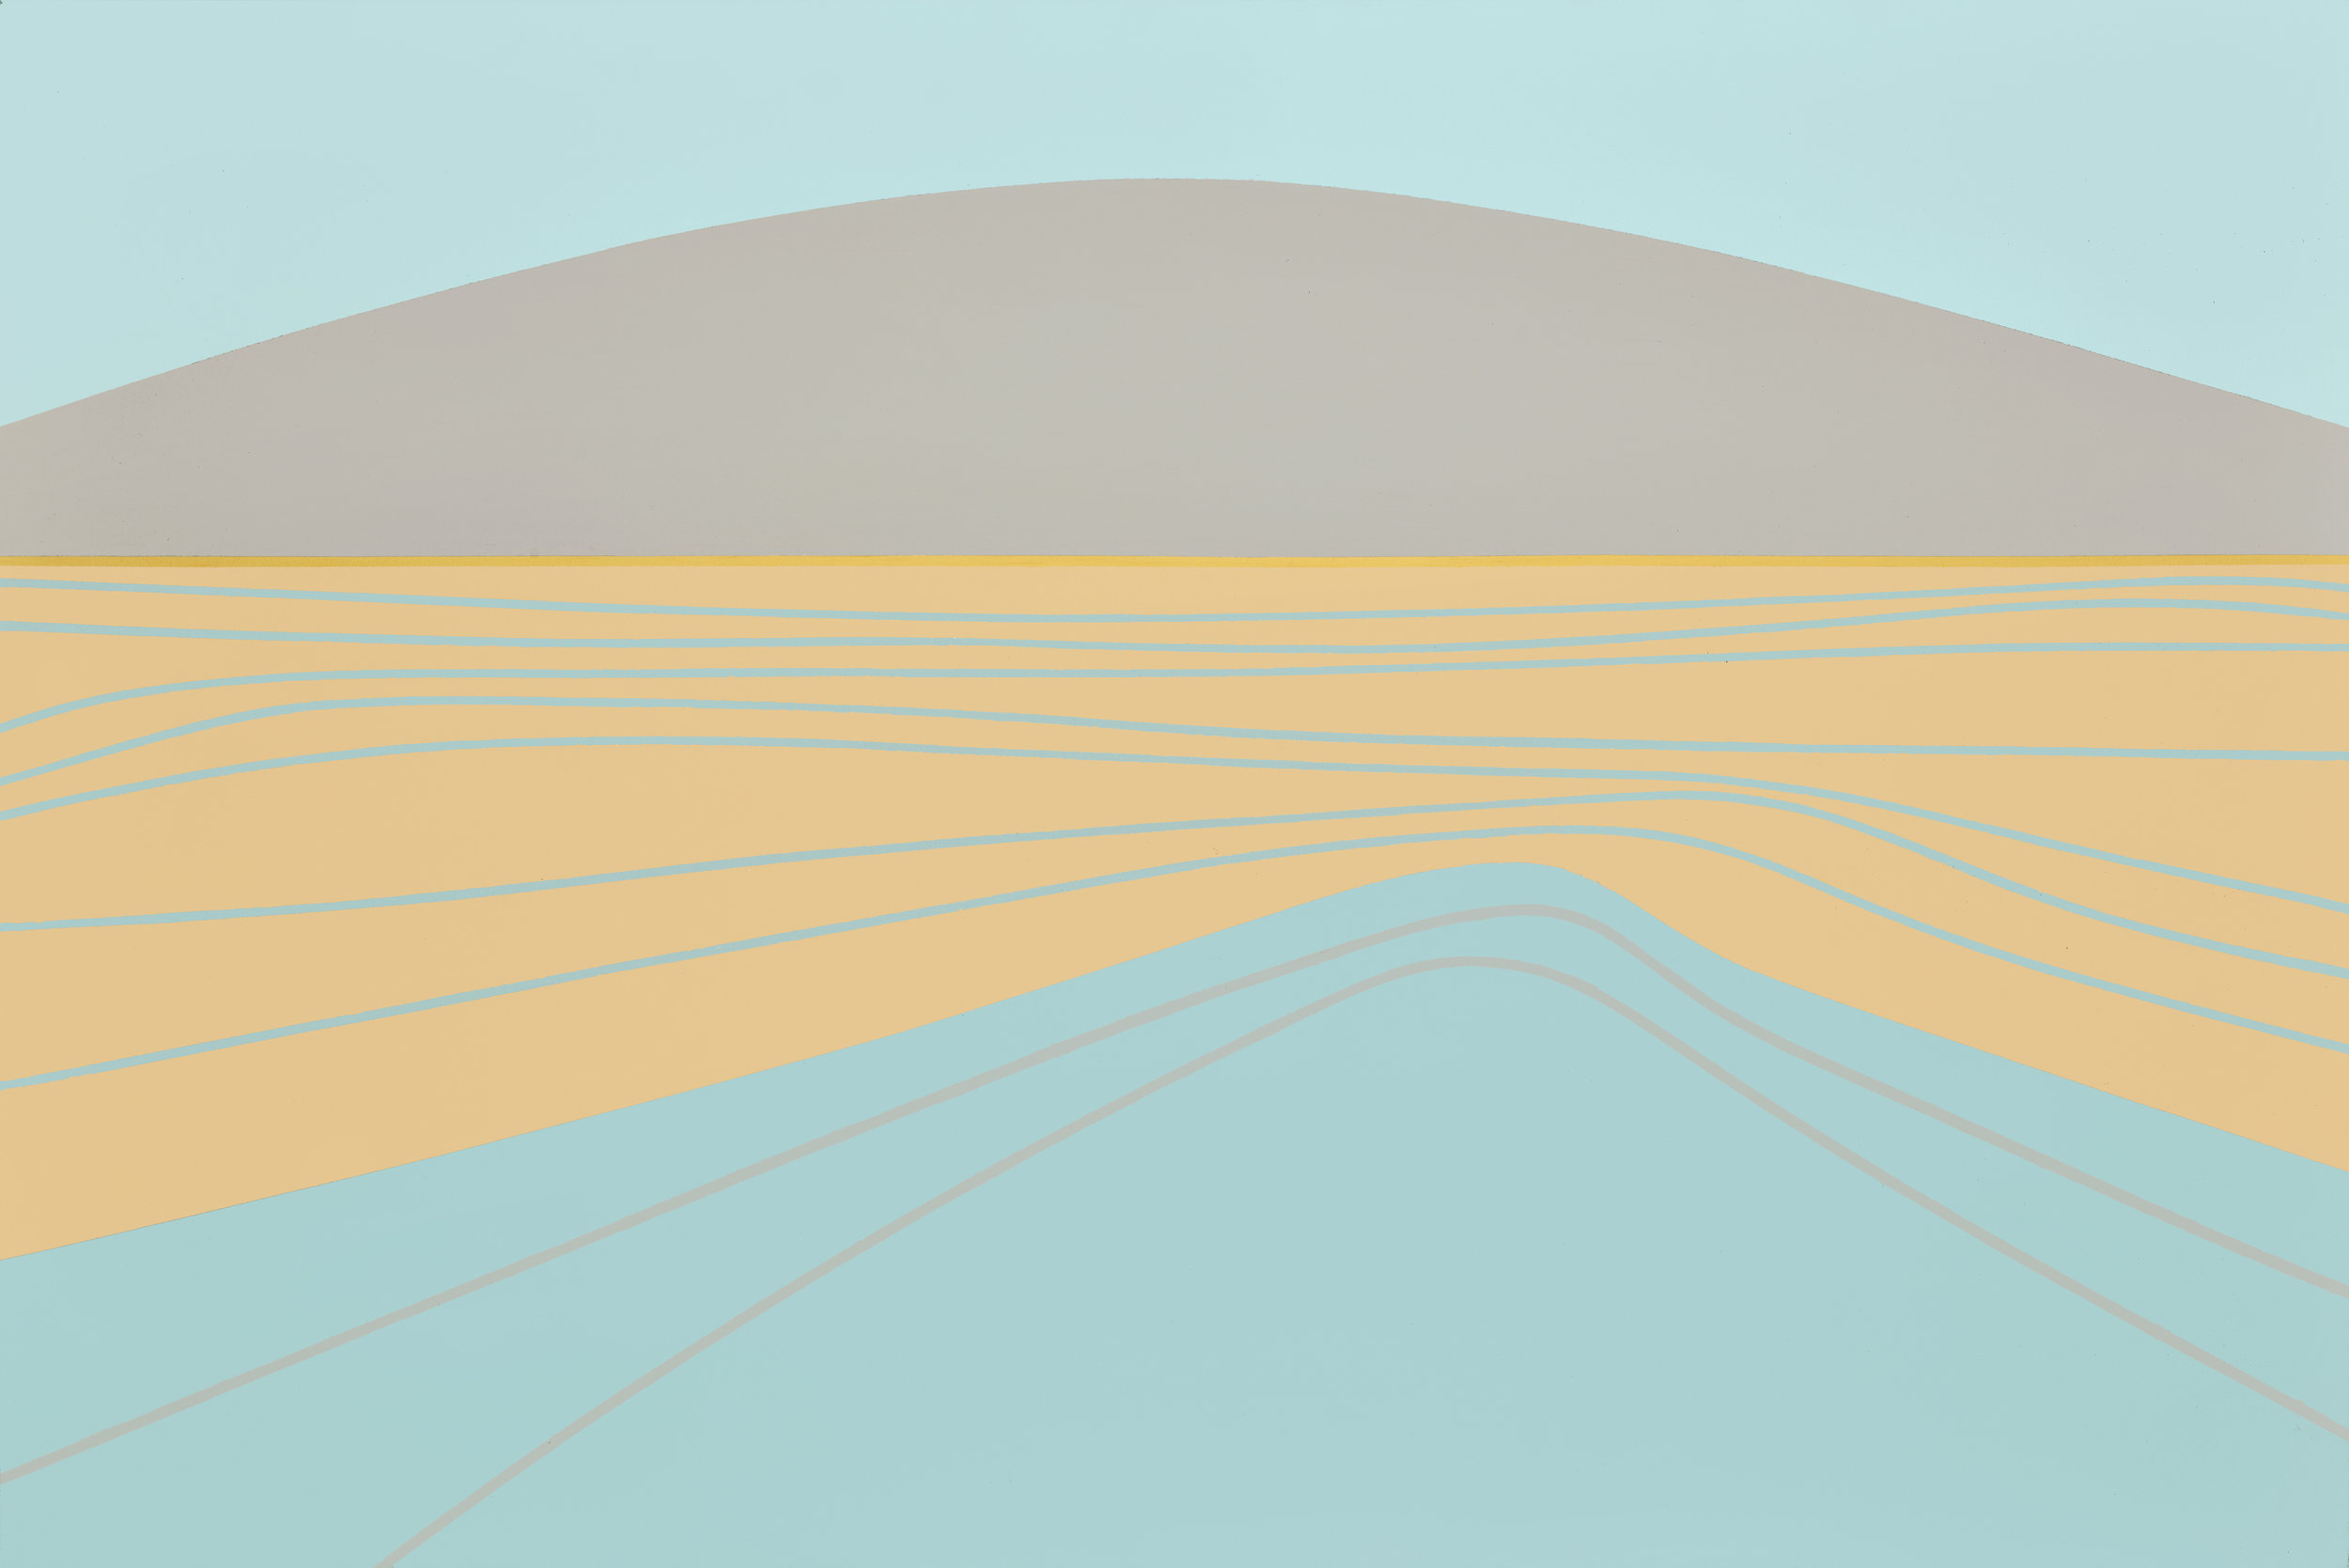 Untitled (Landscape) , 1972  acrylic on canvas 40 x 60 inches; 101.6 x 152.4 centimeters